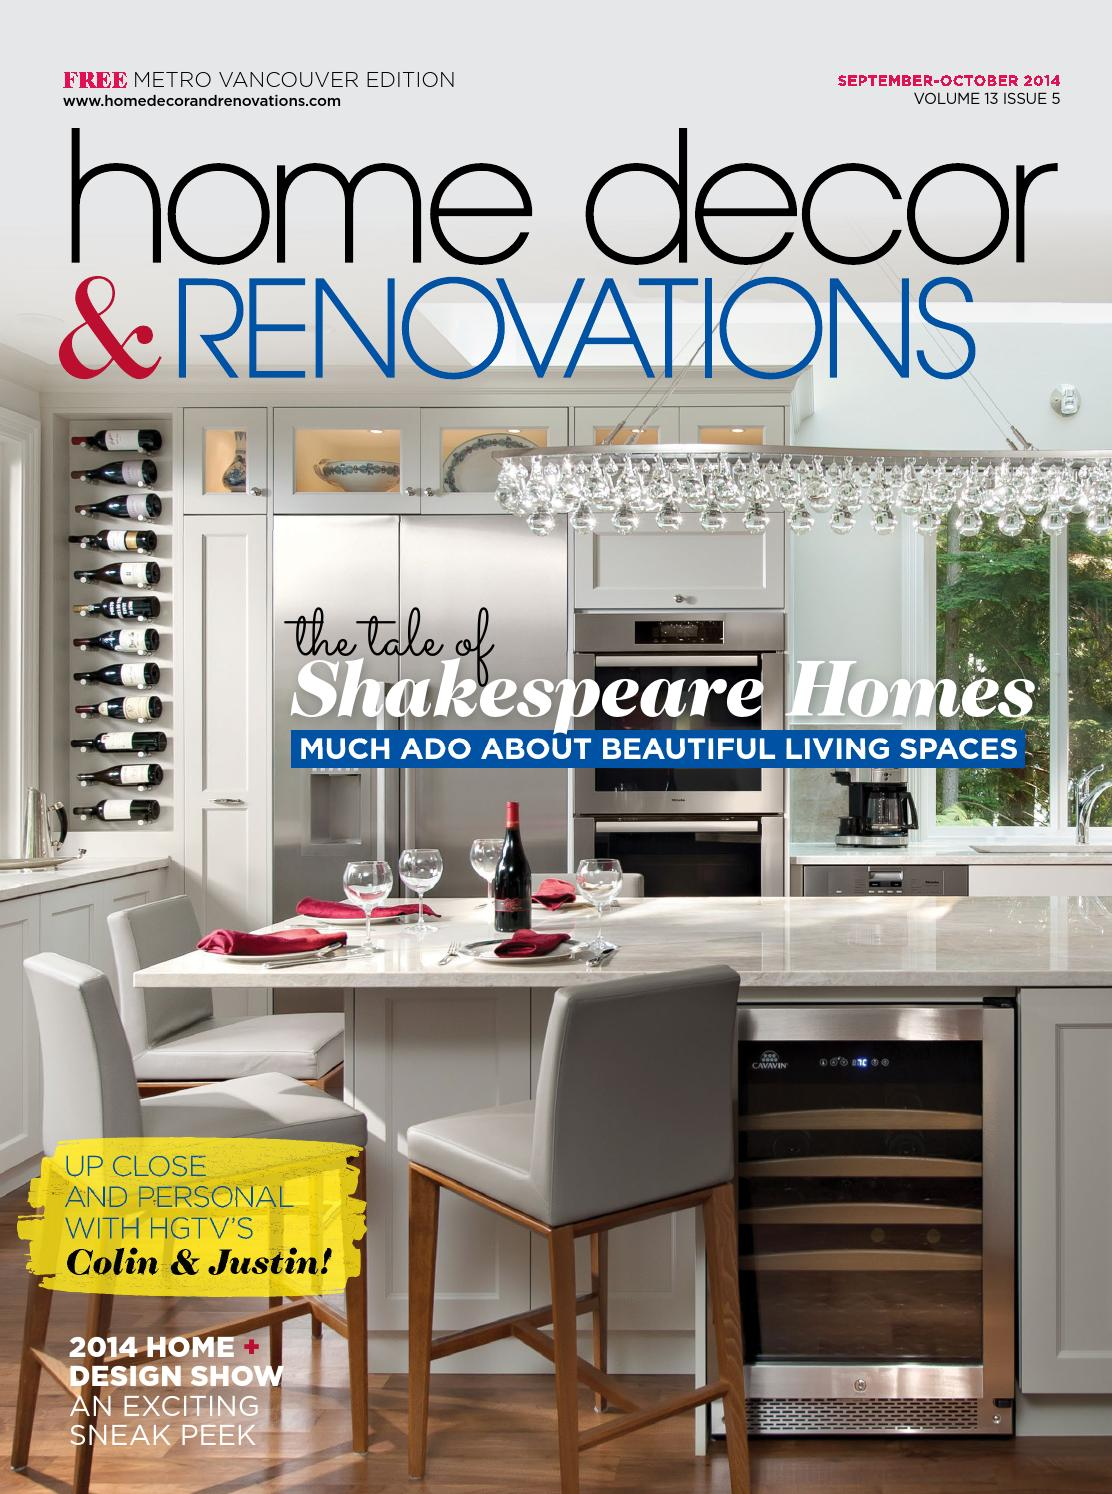 Attractive Vancouver Home Decor U0026 Renovations   SEP/OCT 2014 By NextHome   Issuu